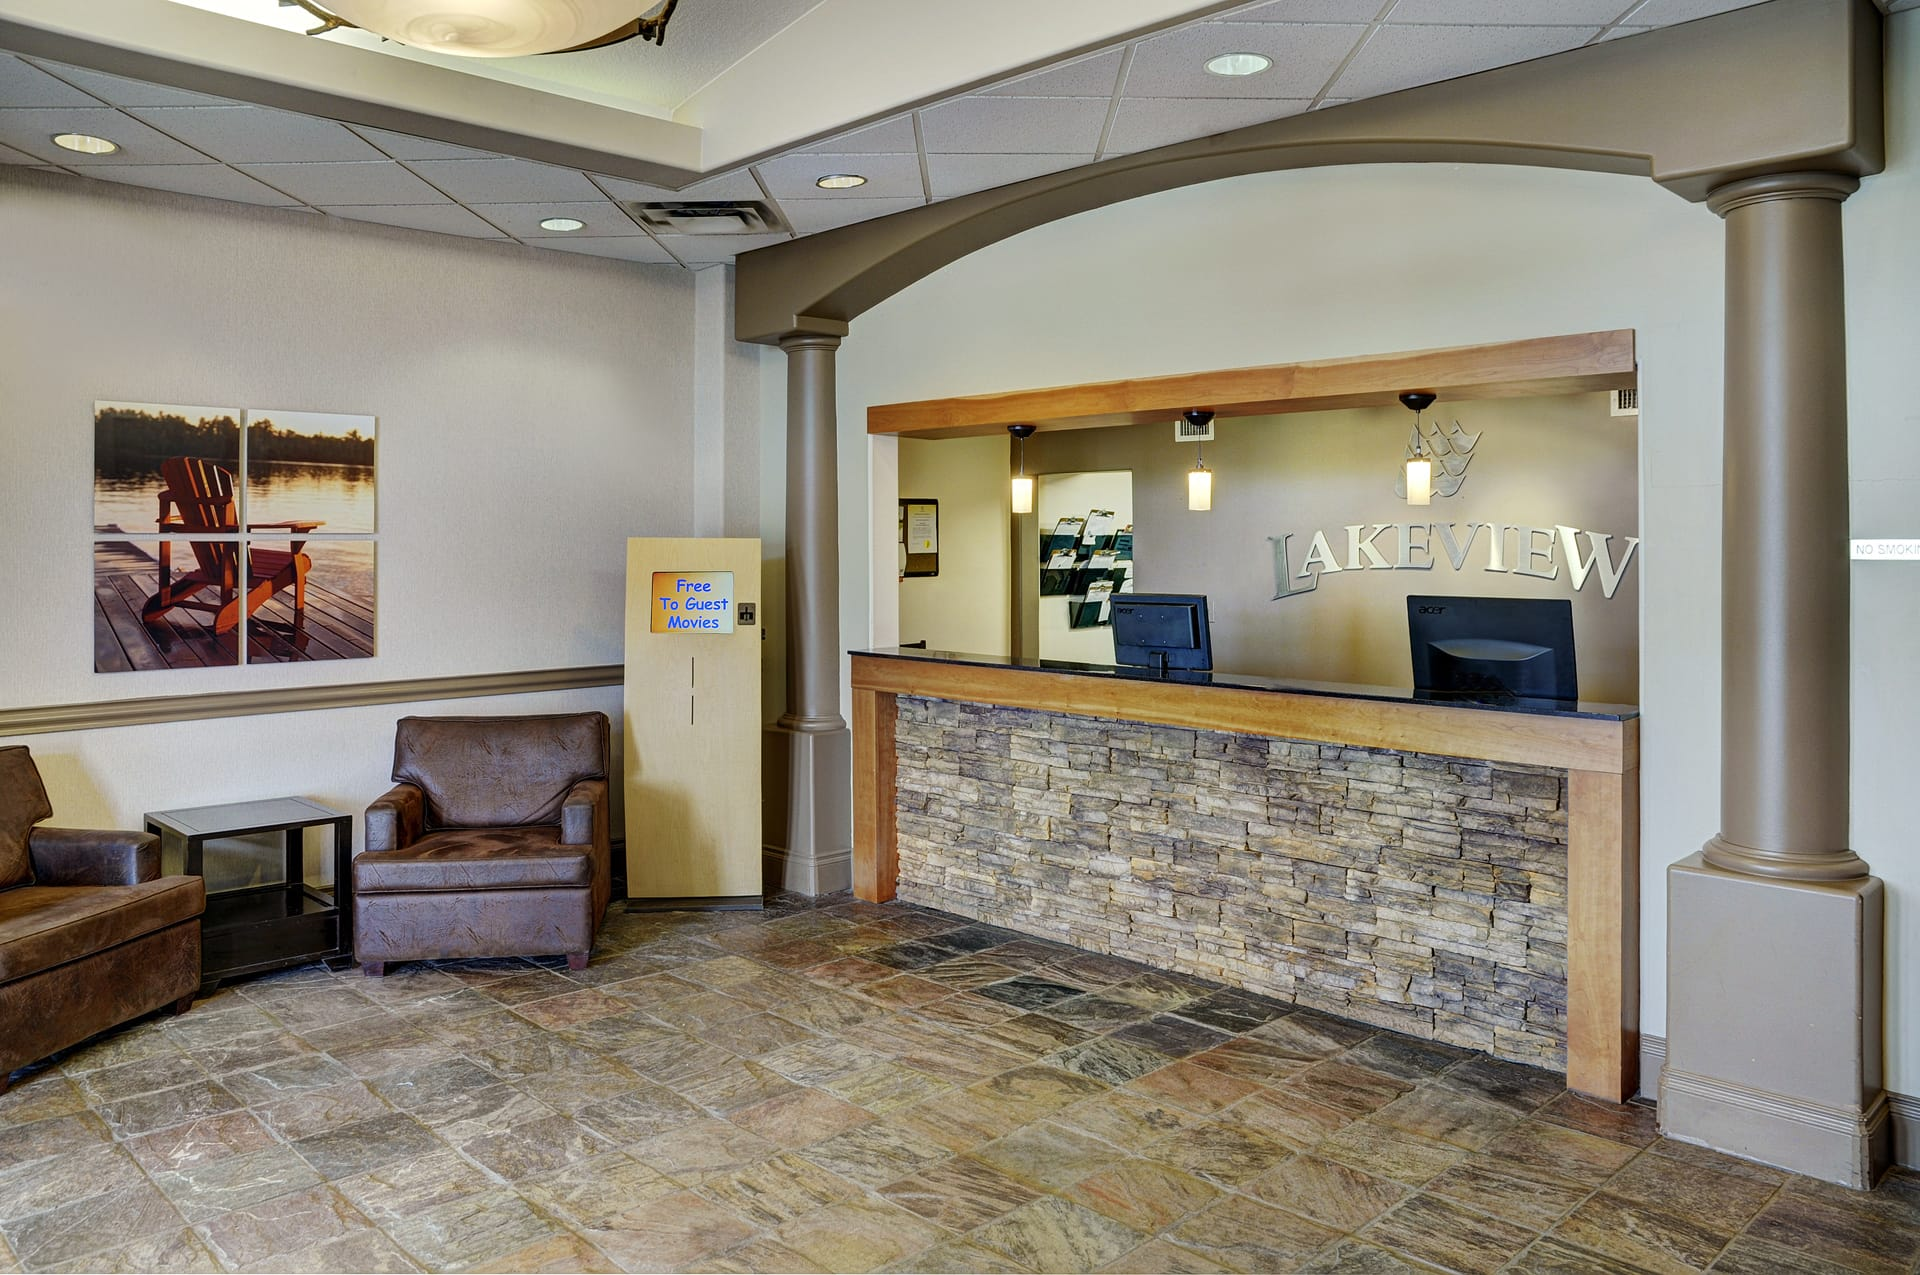 Lakeview Inns & Suites - Fort Saskatchewan